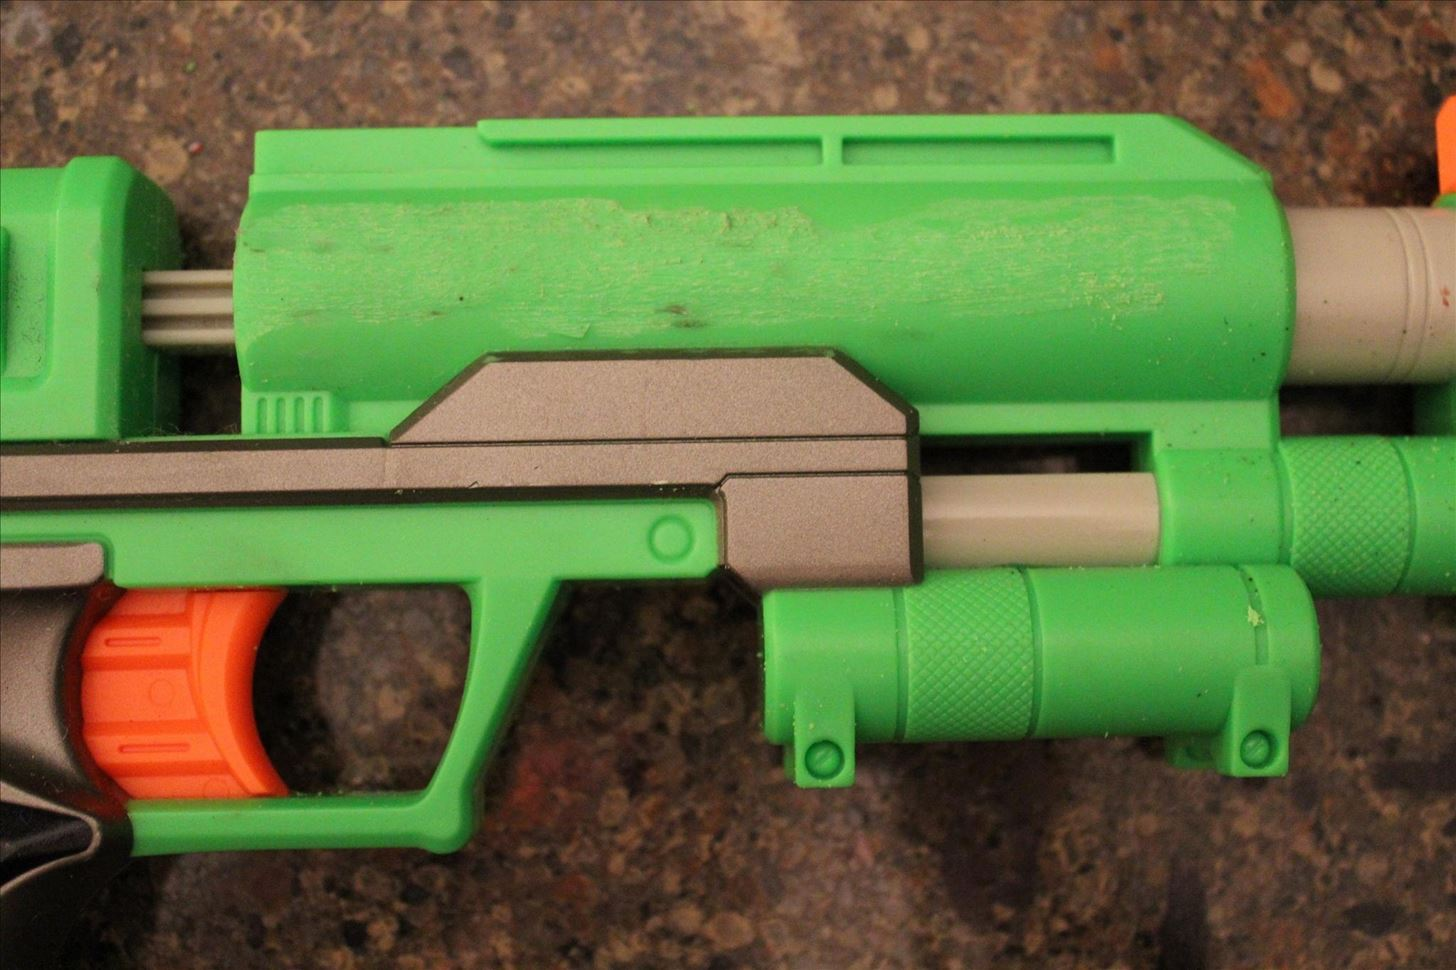 Pimp Your NERF Gun? Goodness... The things people will do to make